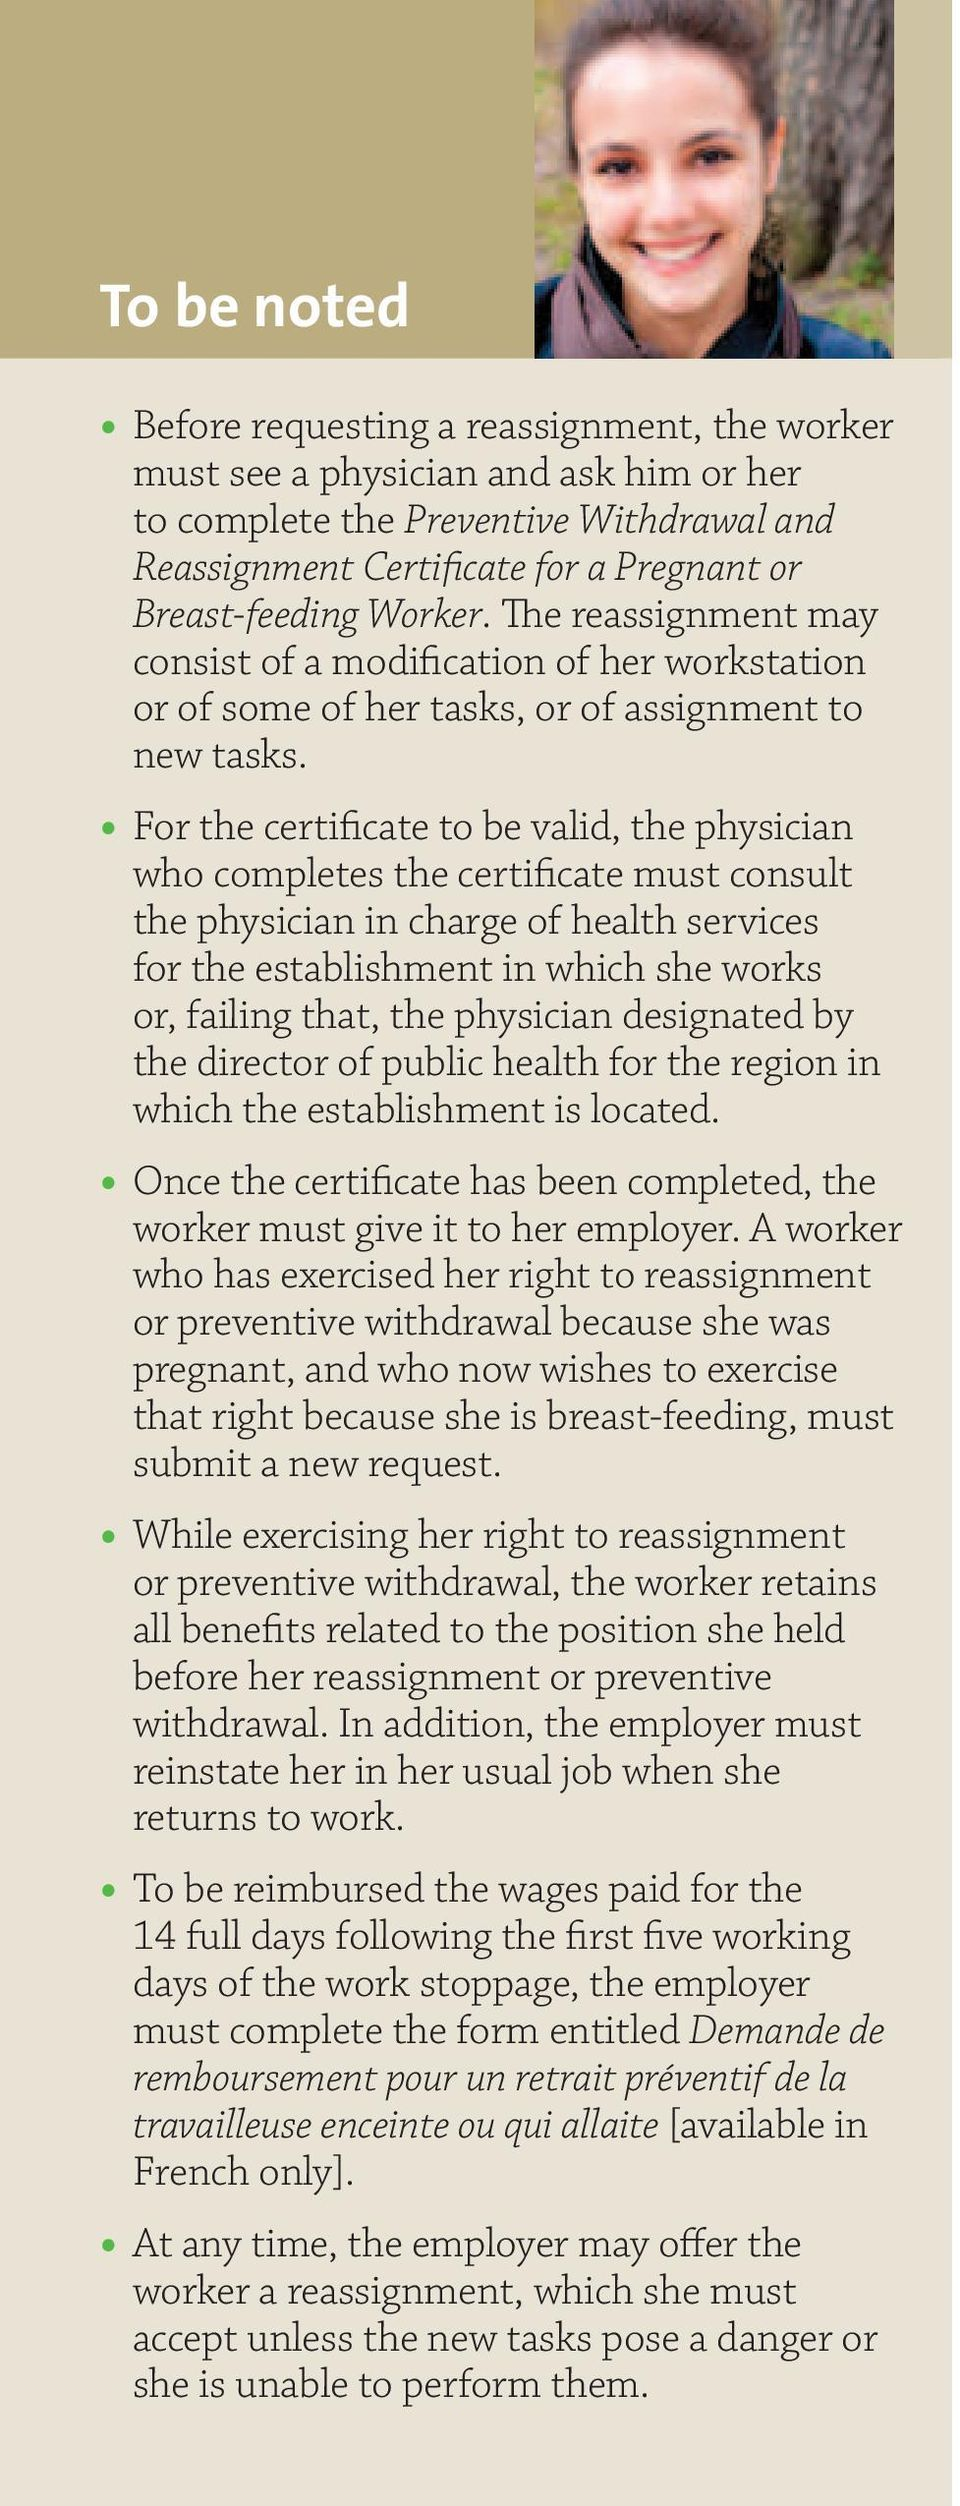 For the certificate to be valid, the physician who completes the certificate must consult the physician in charge of health services for the establishment in which she works or, failing that, the